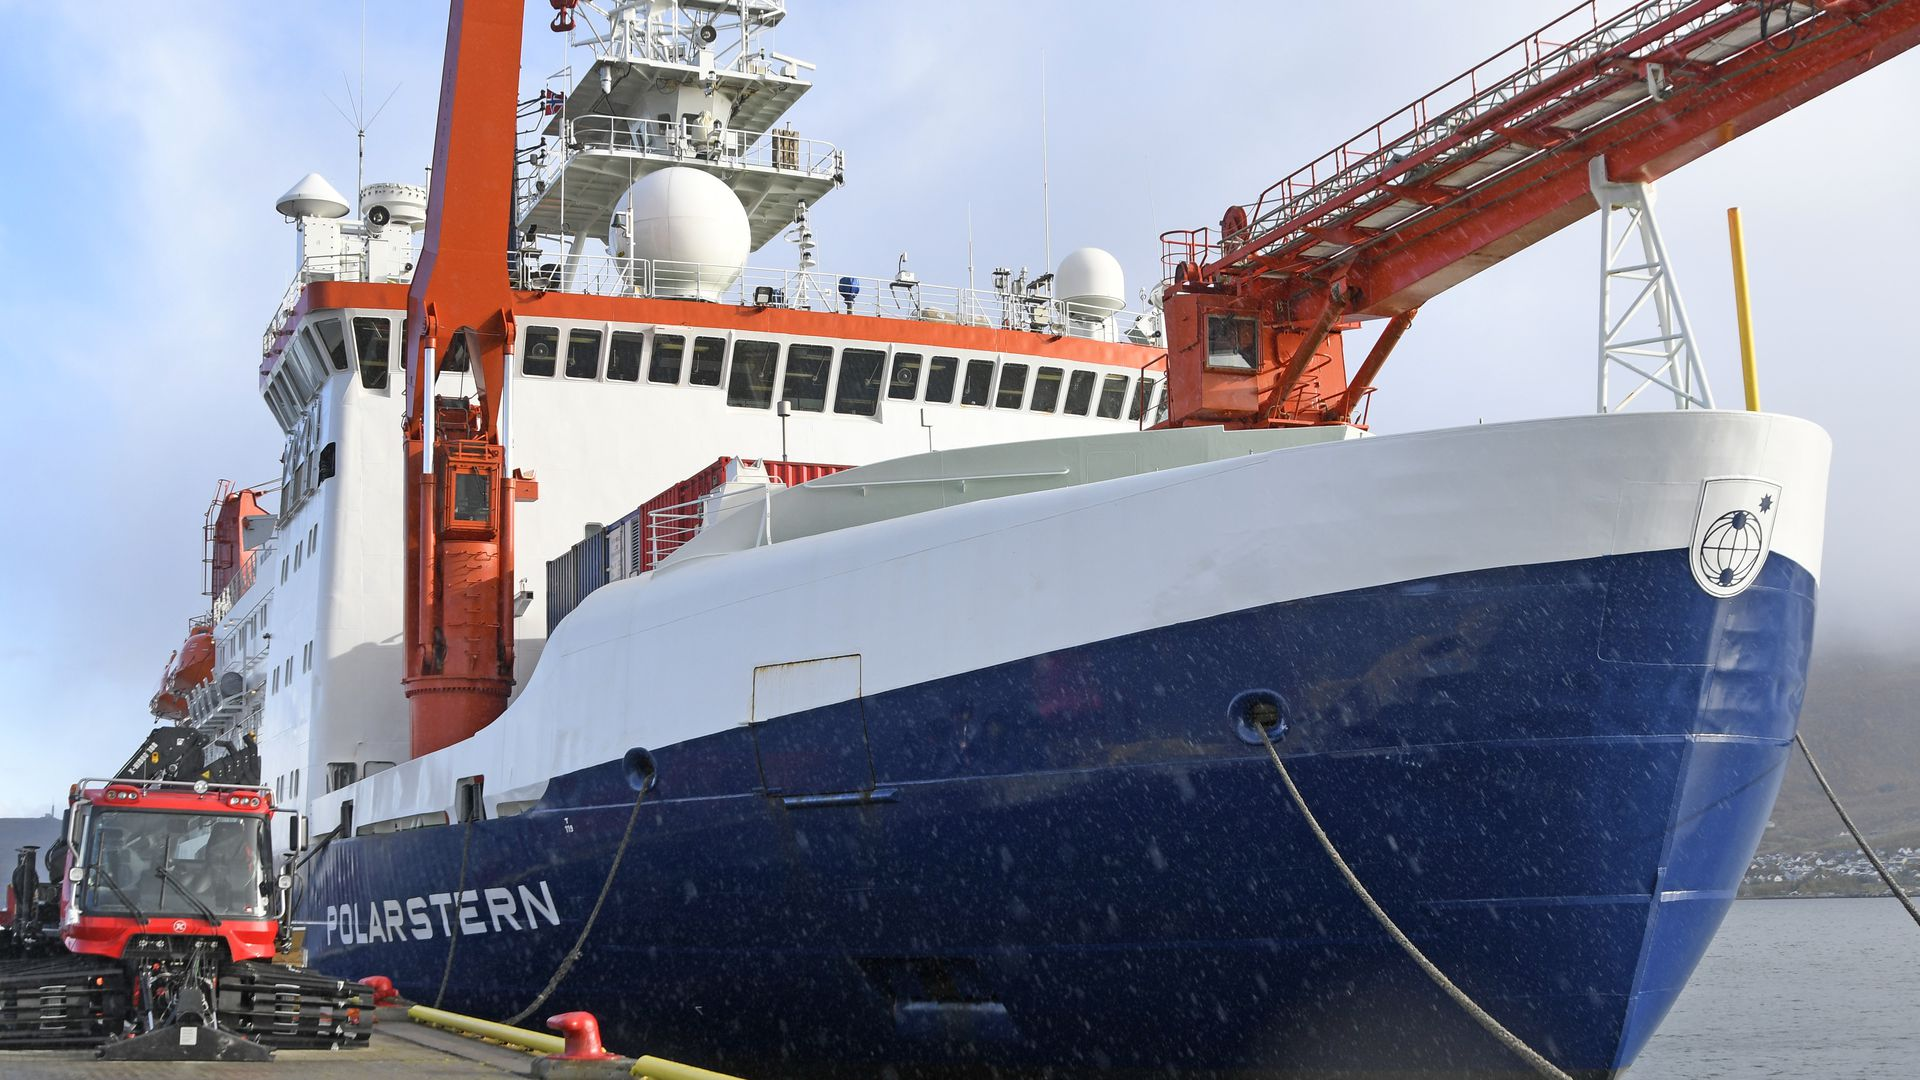 In this image, the research vessel Polarstern is docked and faces the camera nearly head on